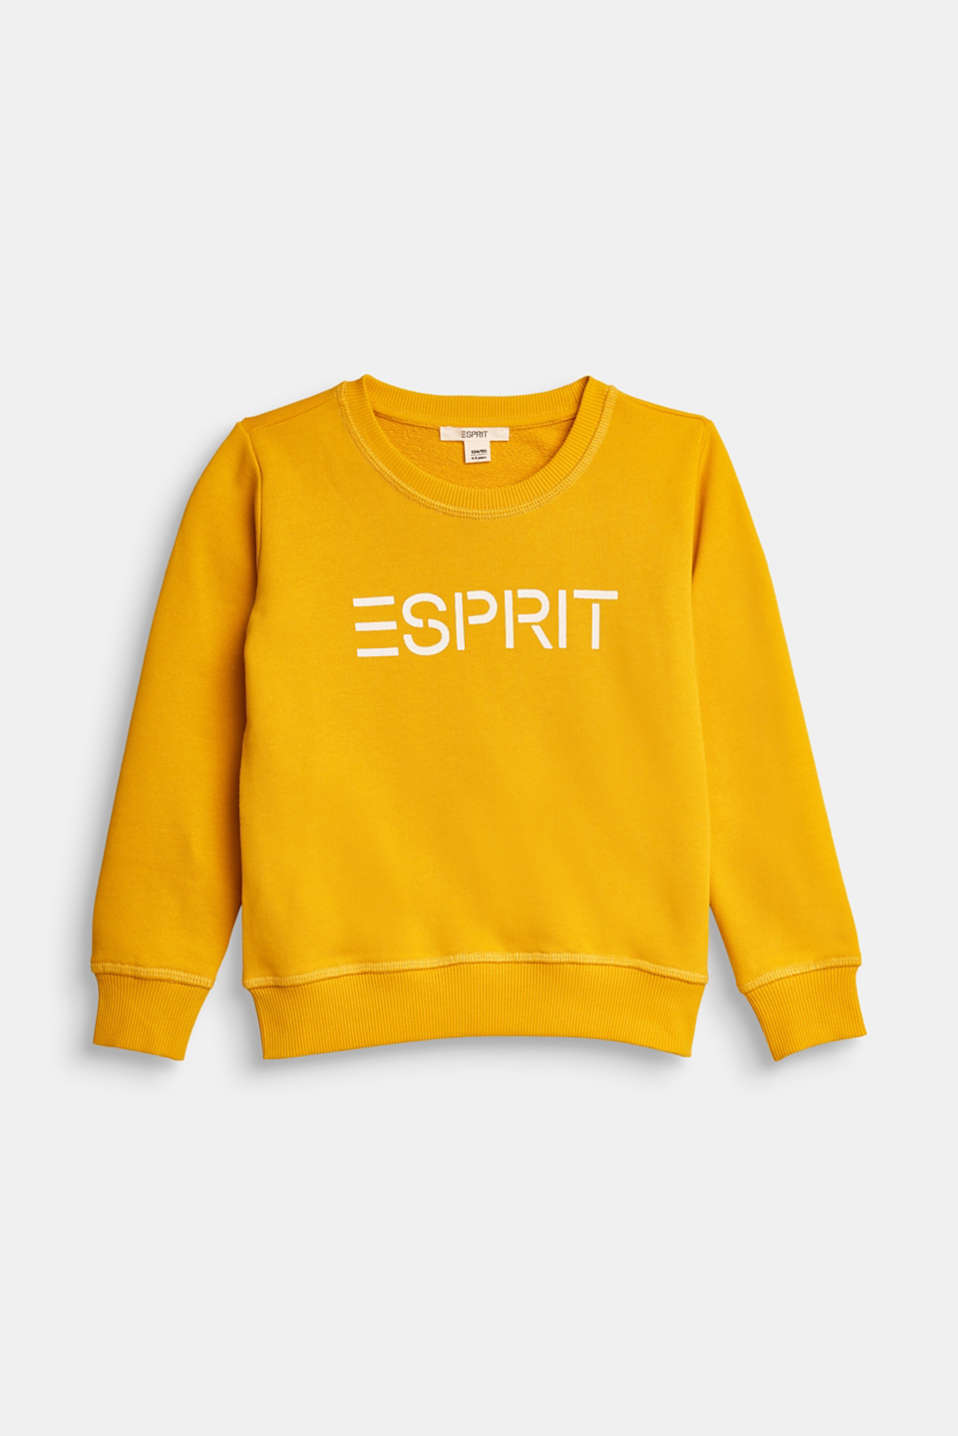 Esprit - Logo sweatshirt, 100% cotton